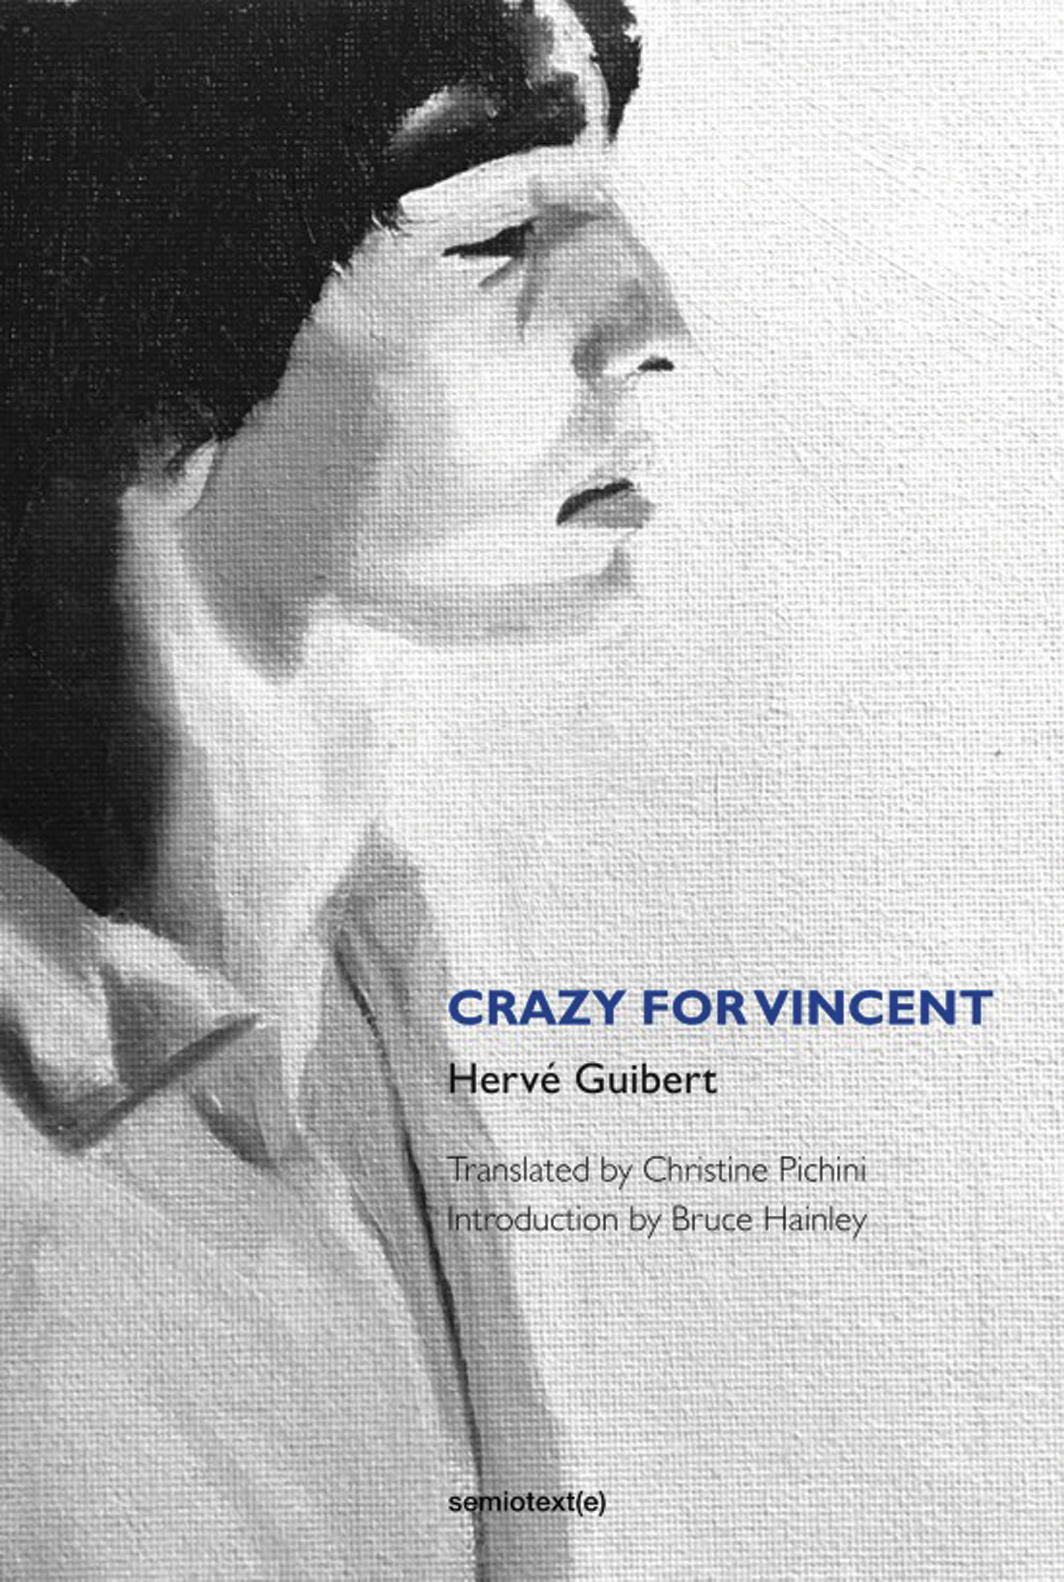 Cover of Hervé Guibert's To the Friend Who Did Not Save My Life (Semiotext[e], 2020).